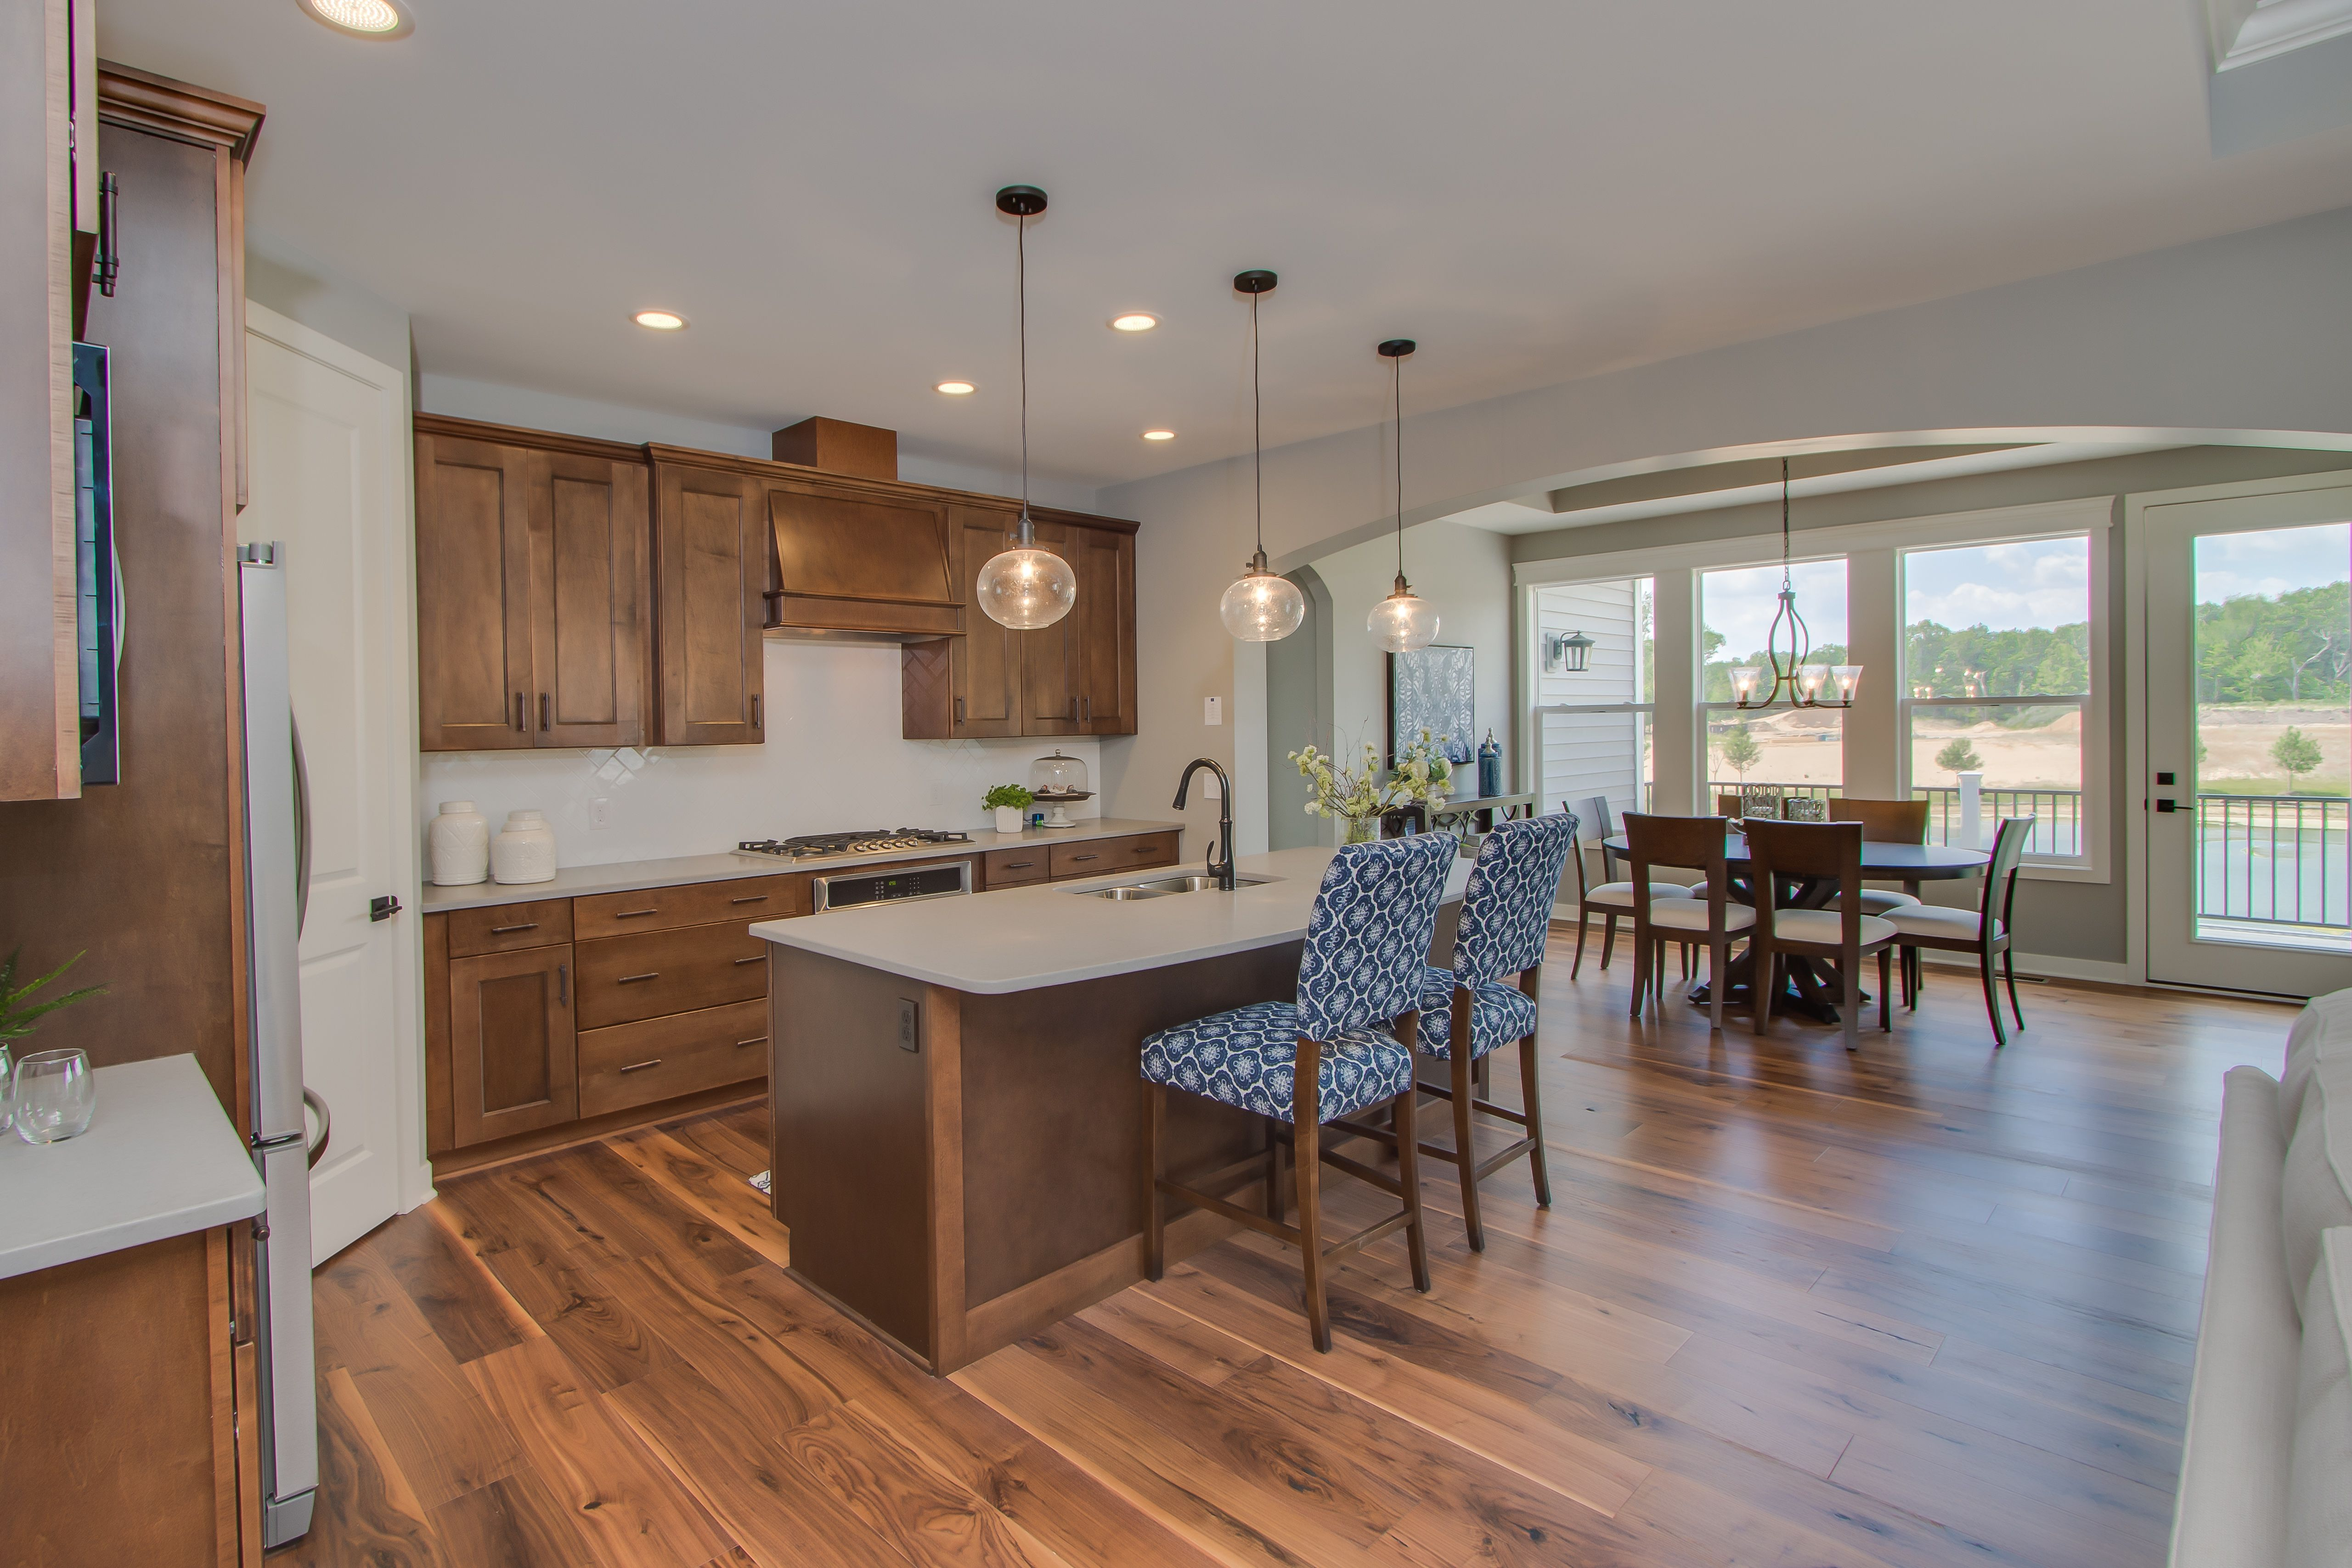 Kitchen with view into Dining Area: Walnut hardwood floors ...